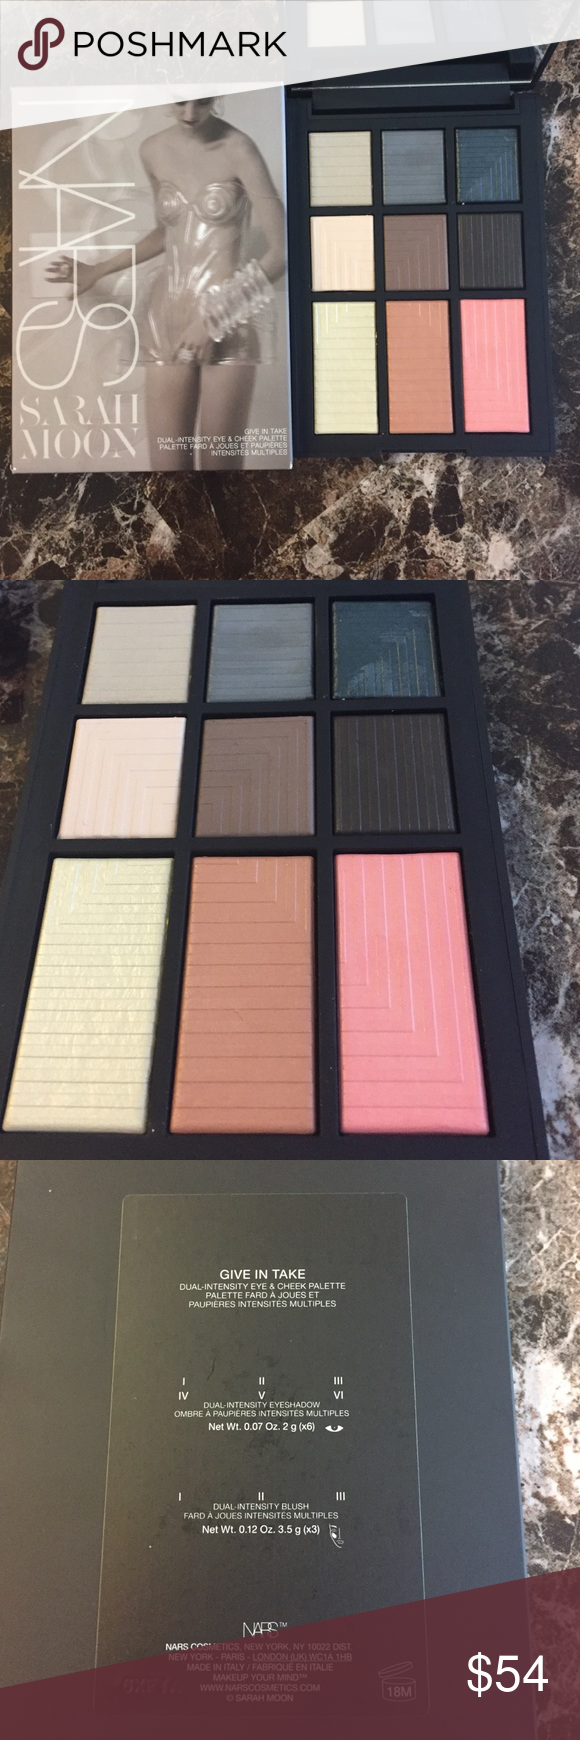 New Limited Nars Give In Take Eye & Cheek Palette New, limited edition Sephora exclusive. $114 value.   A limited-edition eye and cheek palette with dual-intensity shades that transition from sheer to saturated.   Contains six wet/dry eye shadows and three transformative blushes in one perfectly portable, palm-sized palette. For a high-impact, saturated finish, apply with a damp brush. For a sheer finish, apply dry.   This palette contains:  - 6 x 0.07 oz/ 2.07 mL Eye shadow in I, II, III…